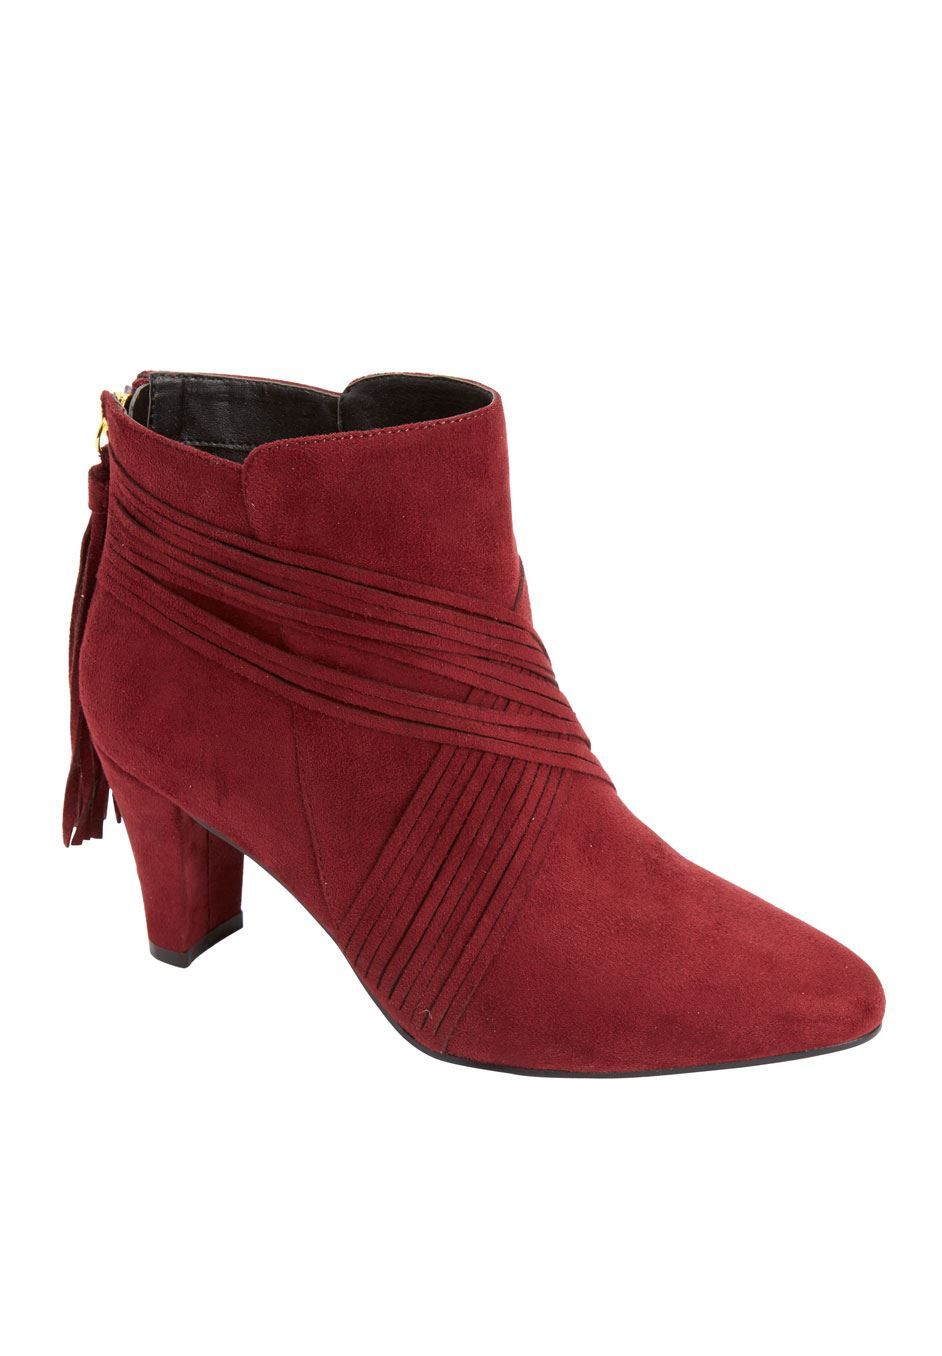 These chic booties feature wrap around detail for a sophisticated and modern look! #fashion #style